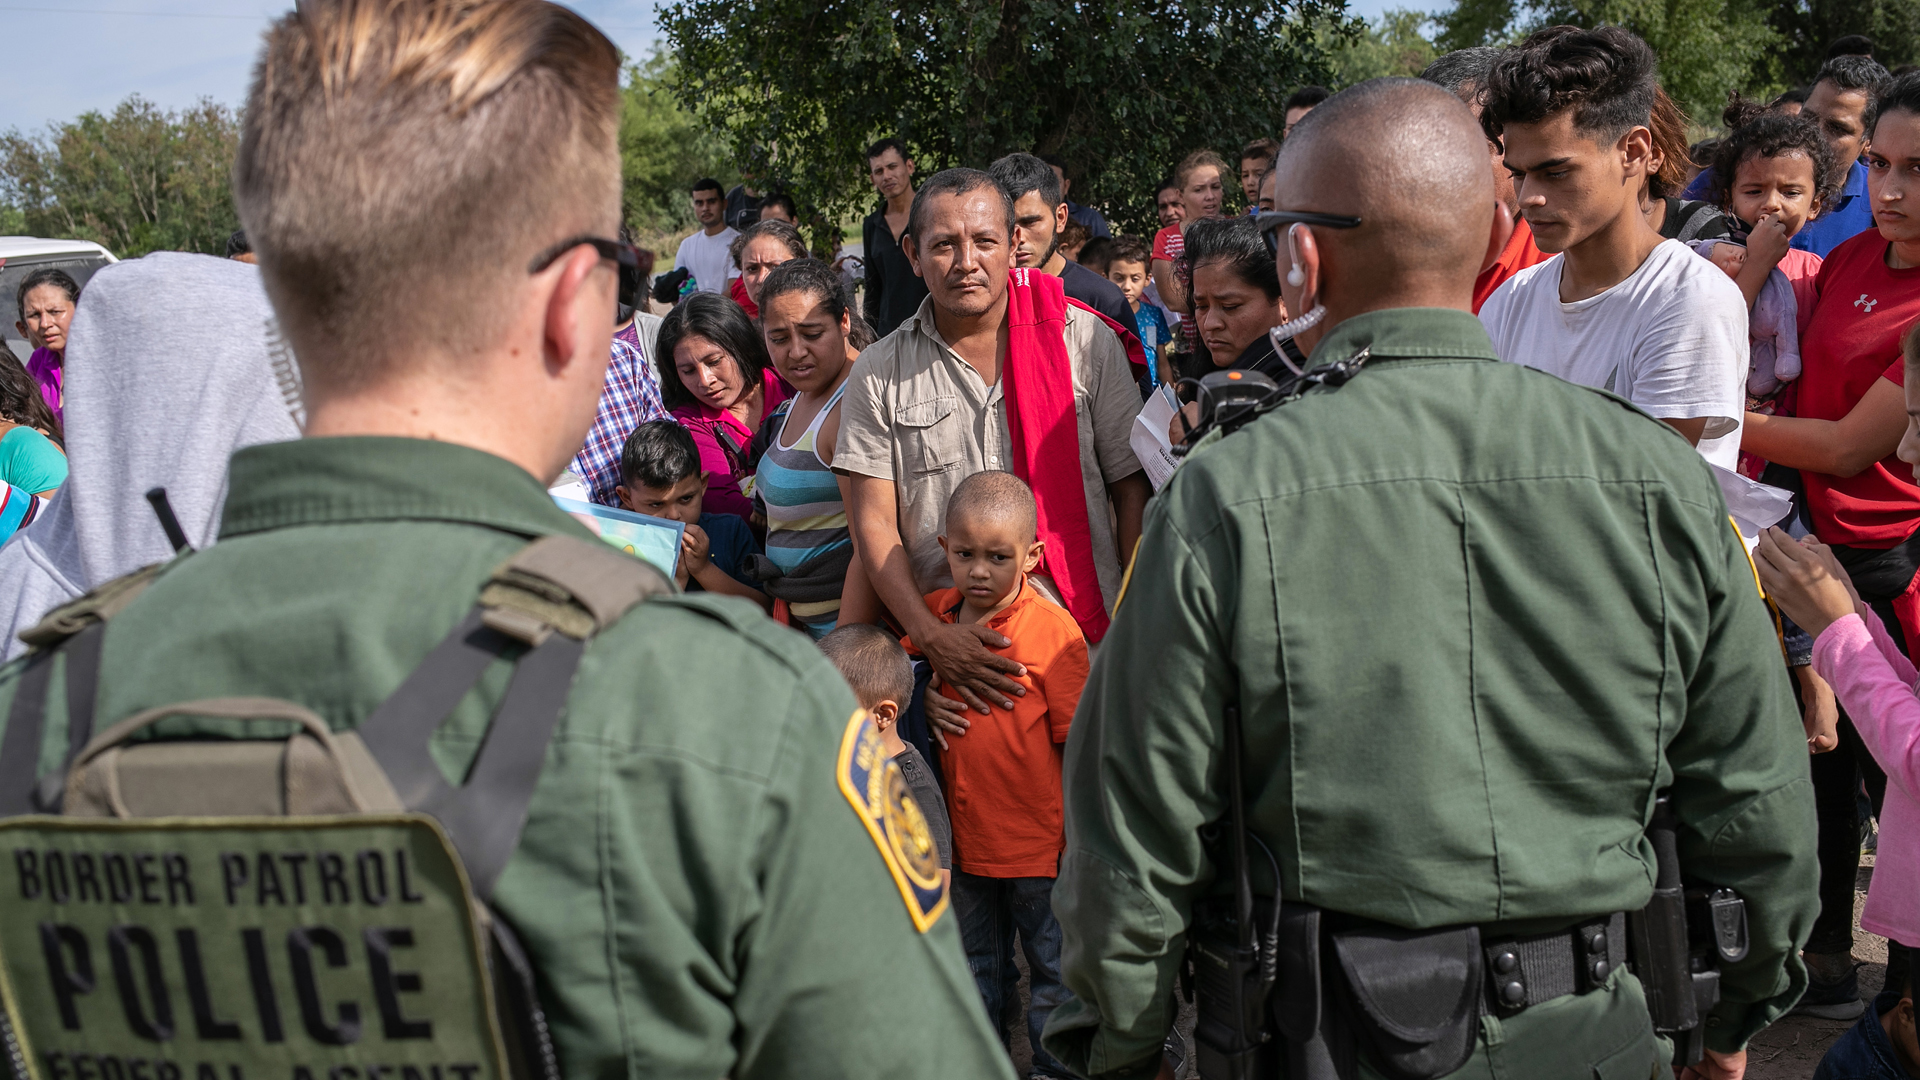 U.S. Border Patrol agents watch over immigrants after taking them into custody on July 02, 2019 in Los Ebanos, Texas. (Credit: John Moore/Getty Images)